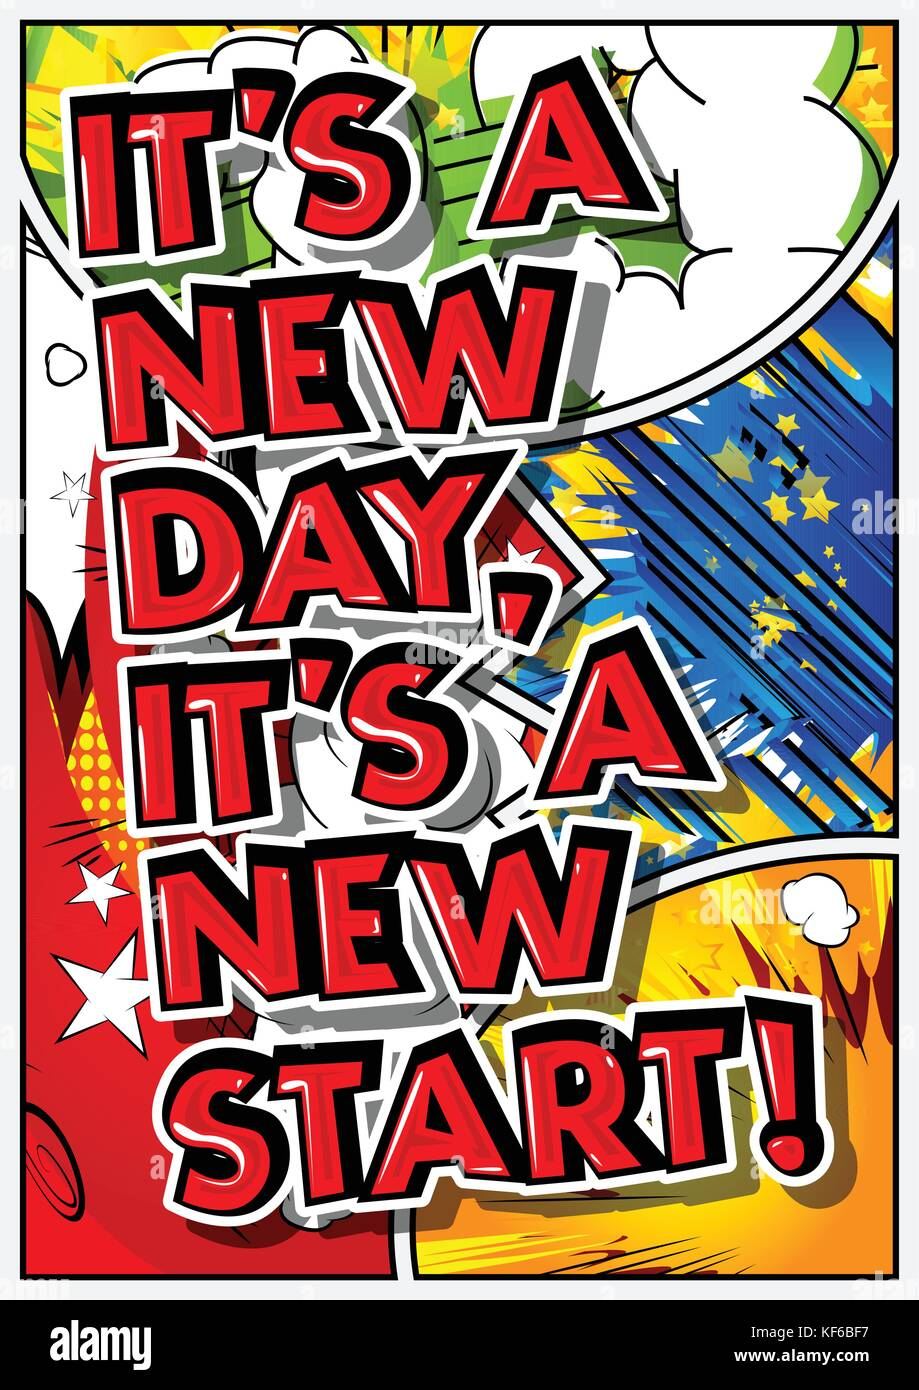 Its A New Day Its A New Start Vector Illustrated Comic Book